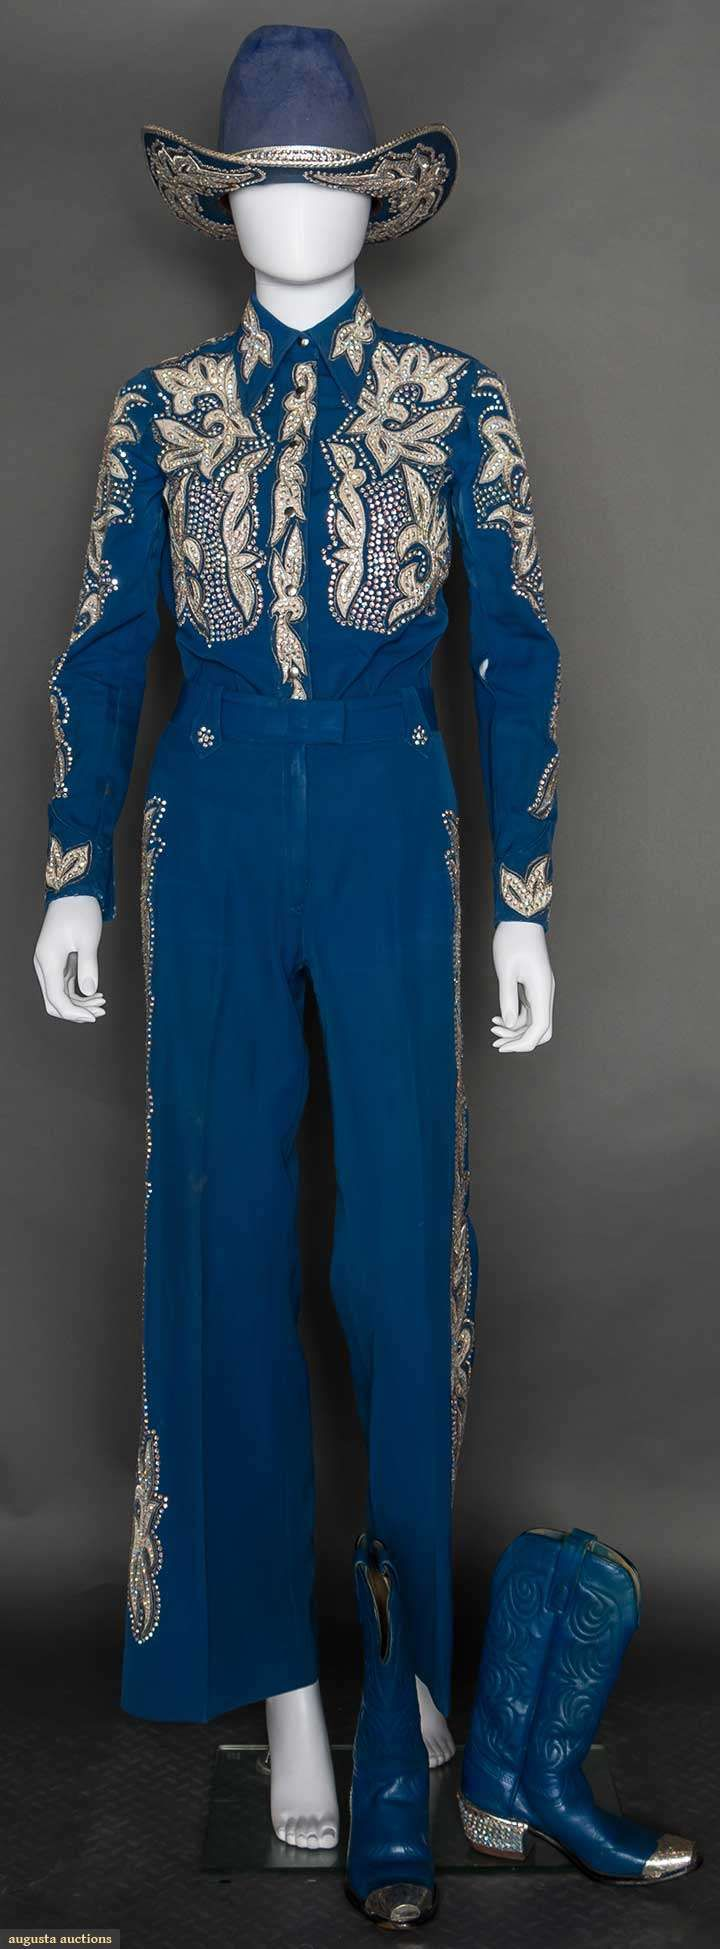 Nudie 4-piece Lady's Blue Rodeo Outfit, 1970s, Augusta Auctions, April 8, 2015 NYC